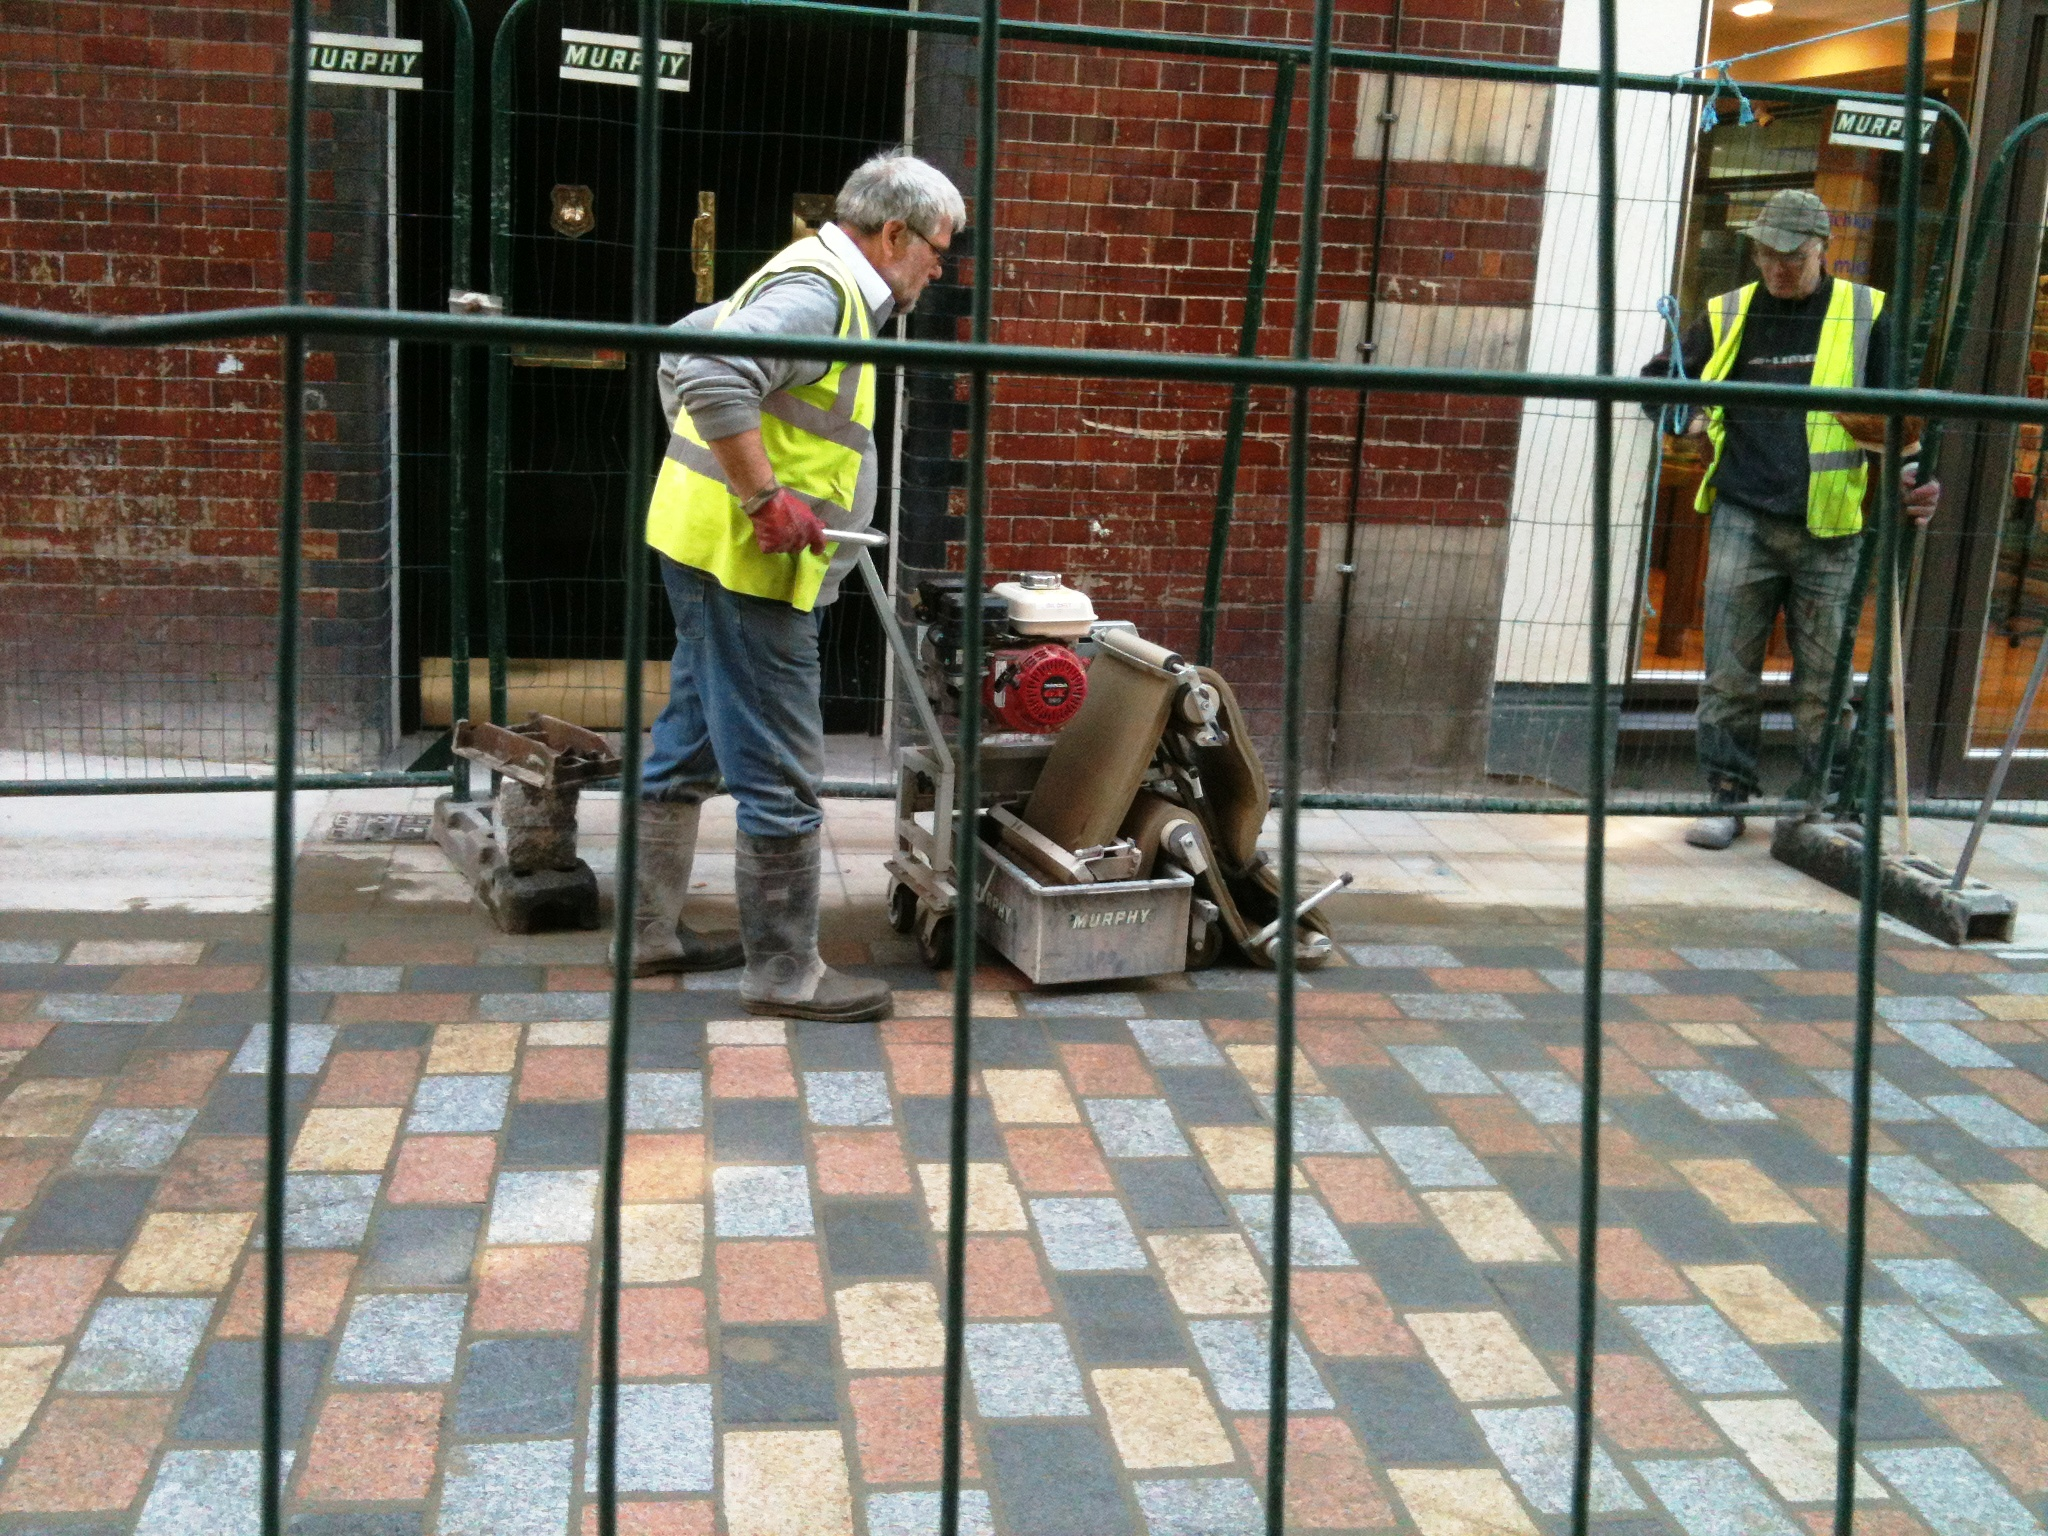 Cleaning the new setts in Mercer Street South.